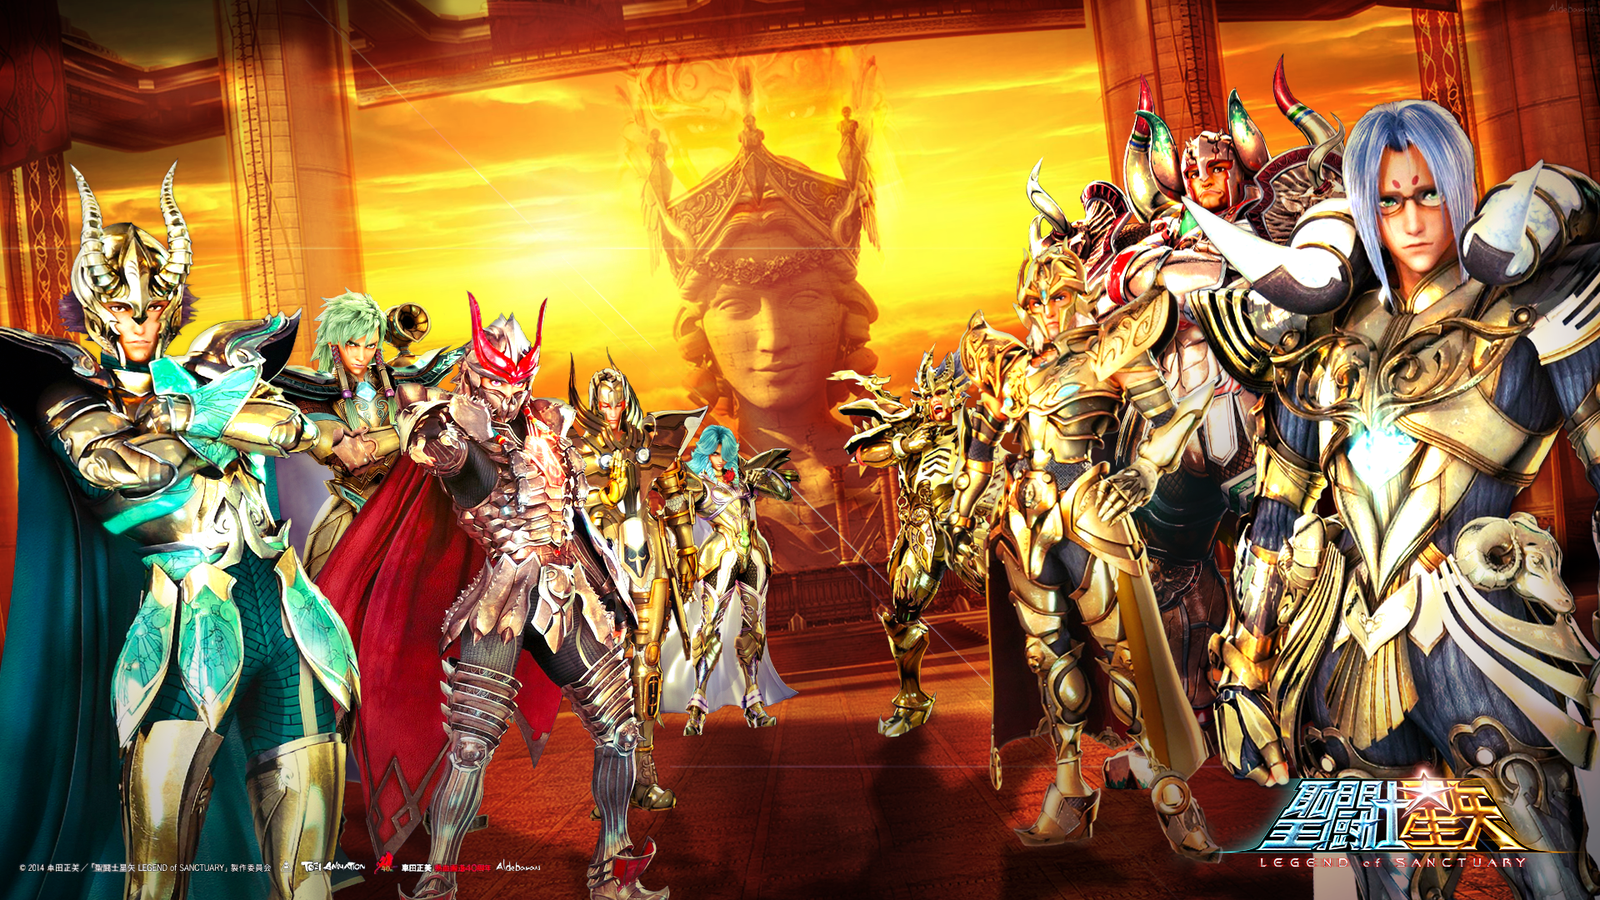 Ping Decrease Guide - Ipmana - Page 5 Saint_seiya_legend_of_sanctuary_gold_wallpaper_by_saintaldebaran-d7eakz0